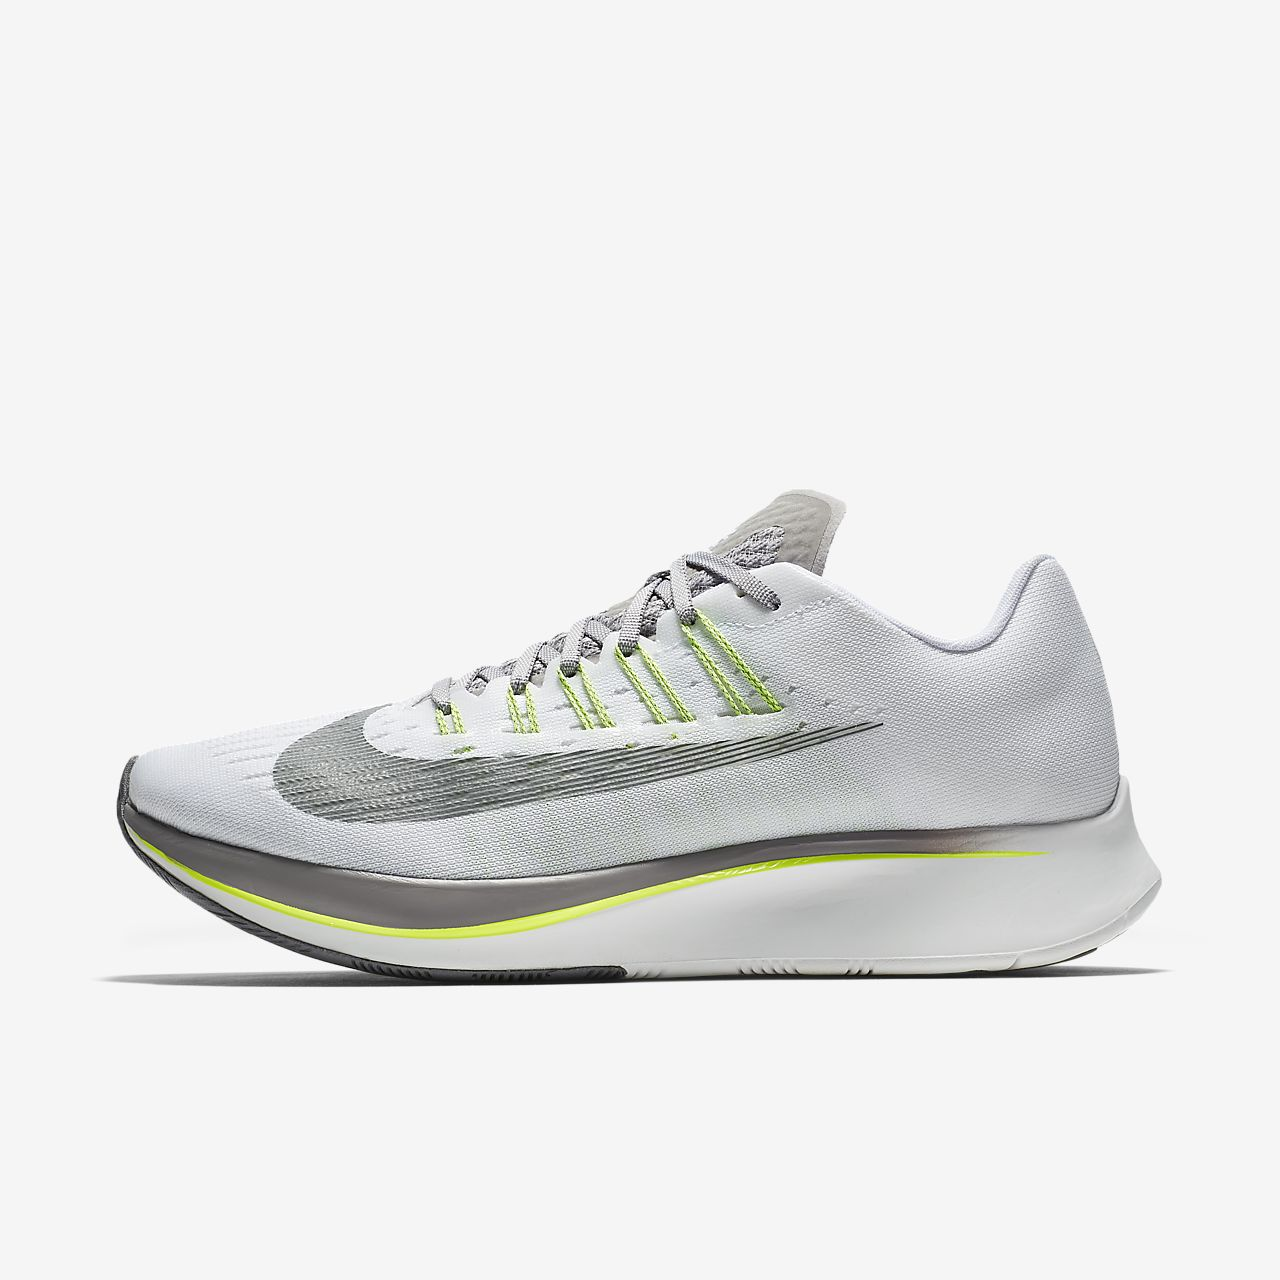 info for 8fed8 4cf9b Men s Running Shoe. Nike Zoom Fly